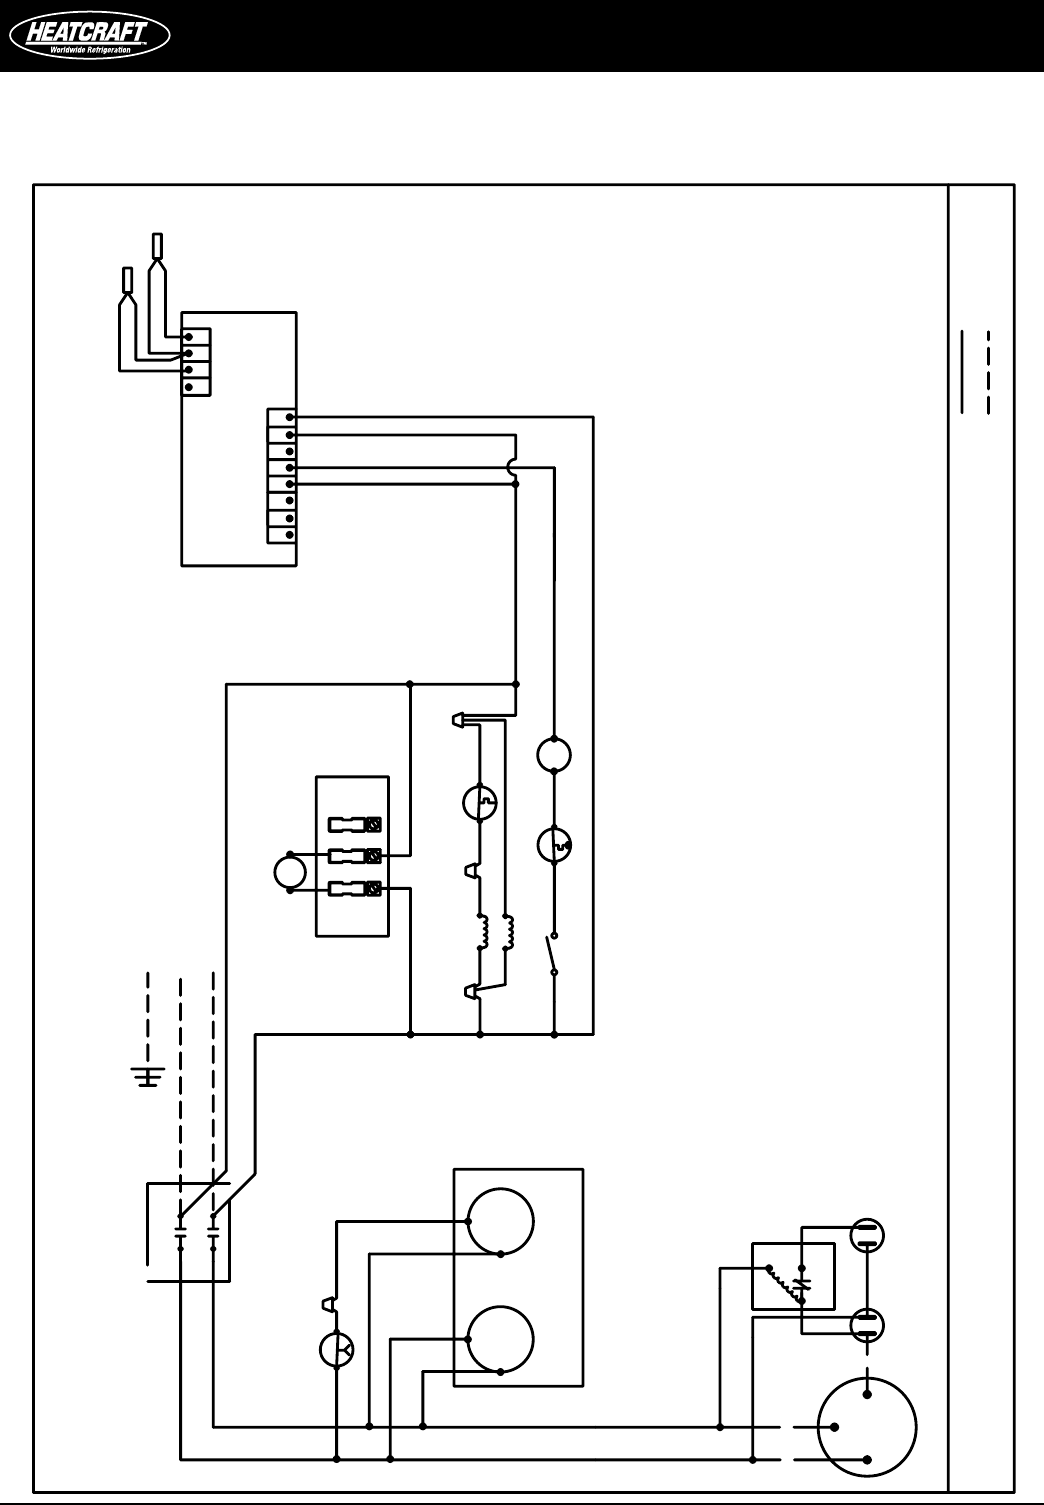 defrost termination switch wiring diagram lincoln 225 welder heatcraft evap freezer get free image